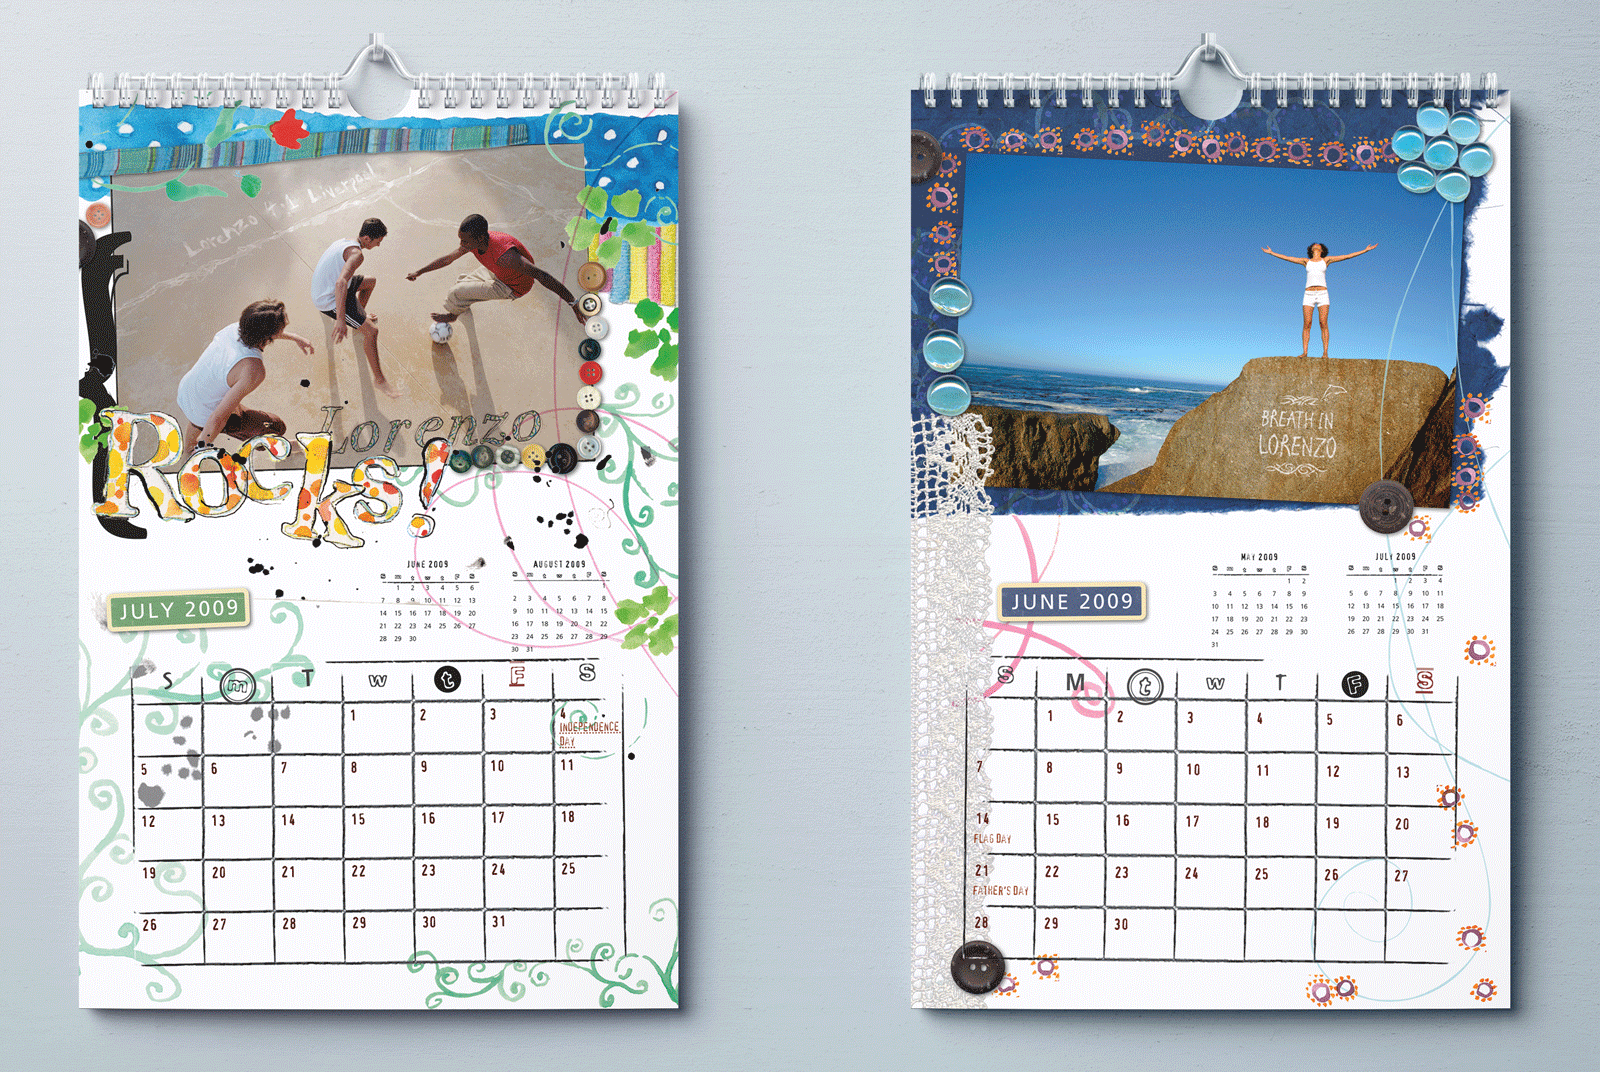 http://bigeyes.co.il/wp-content/uploads/2019/07/highschool-calendar-6.png